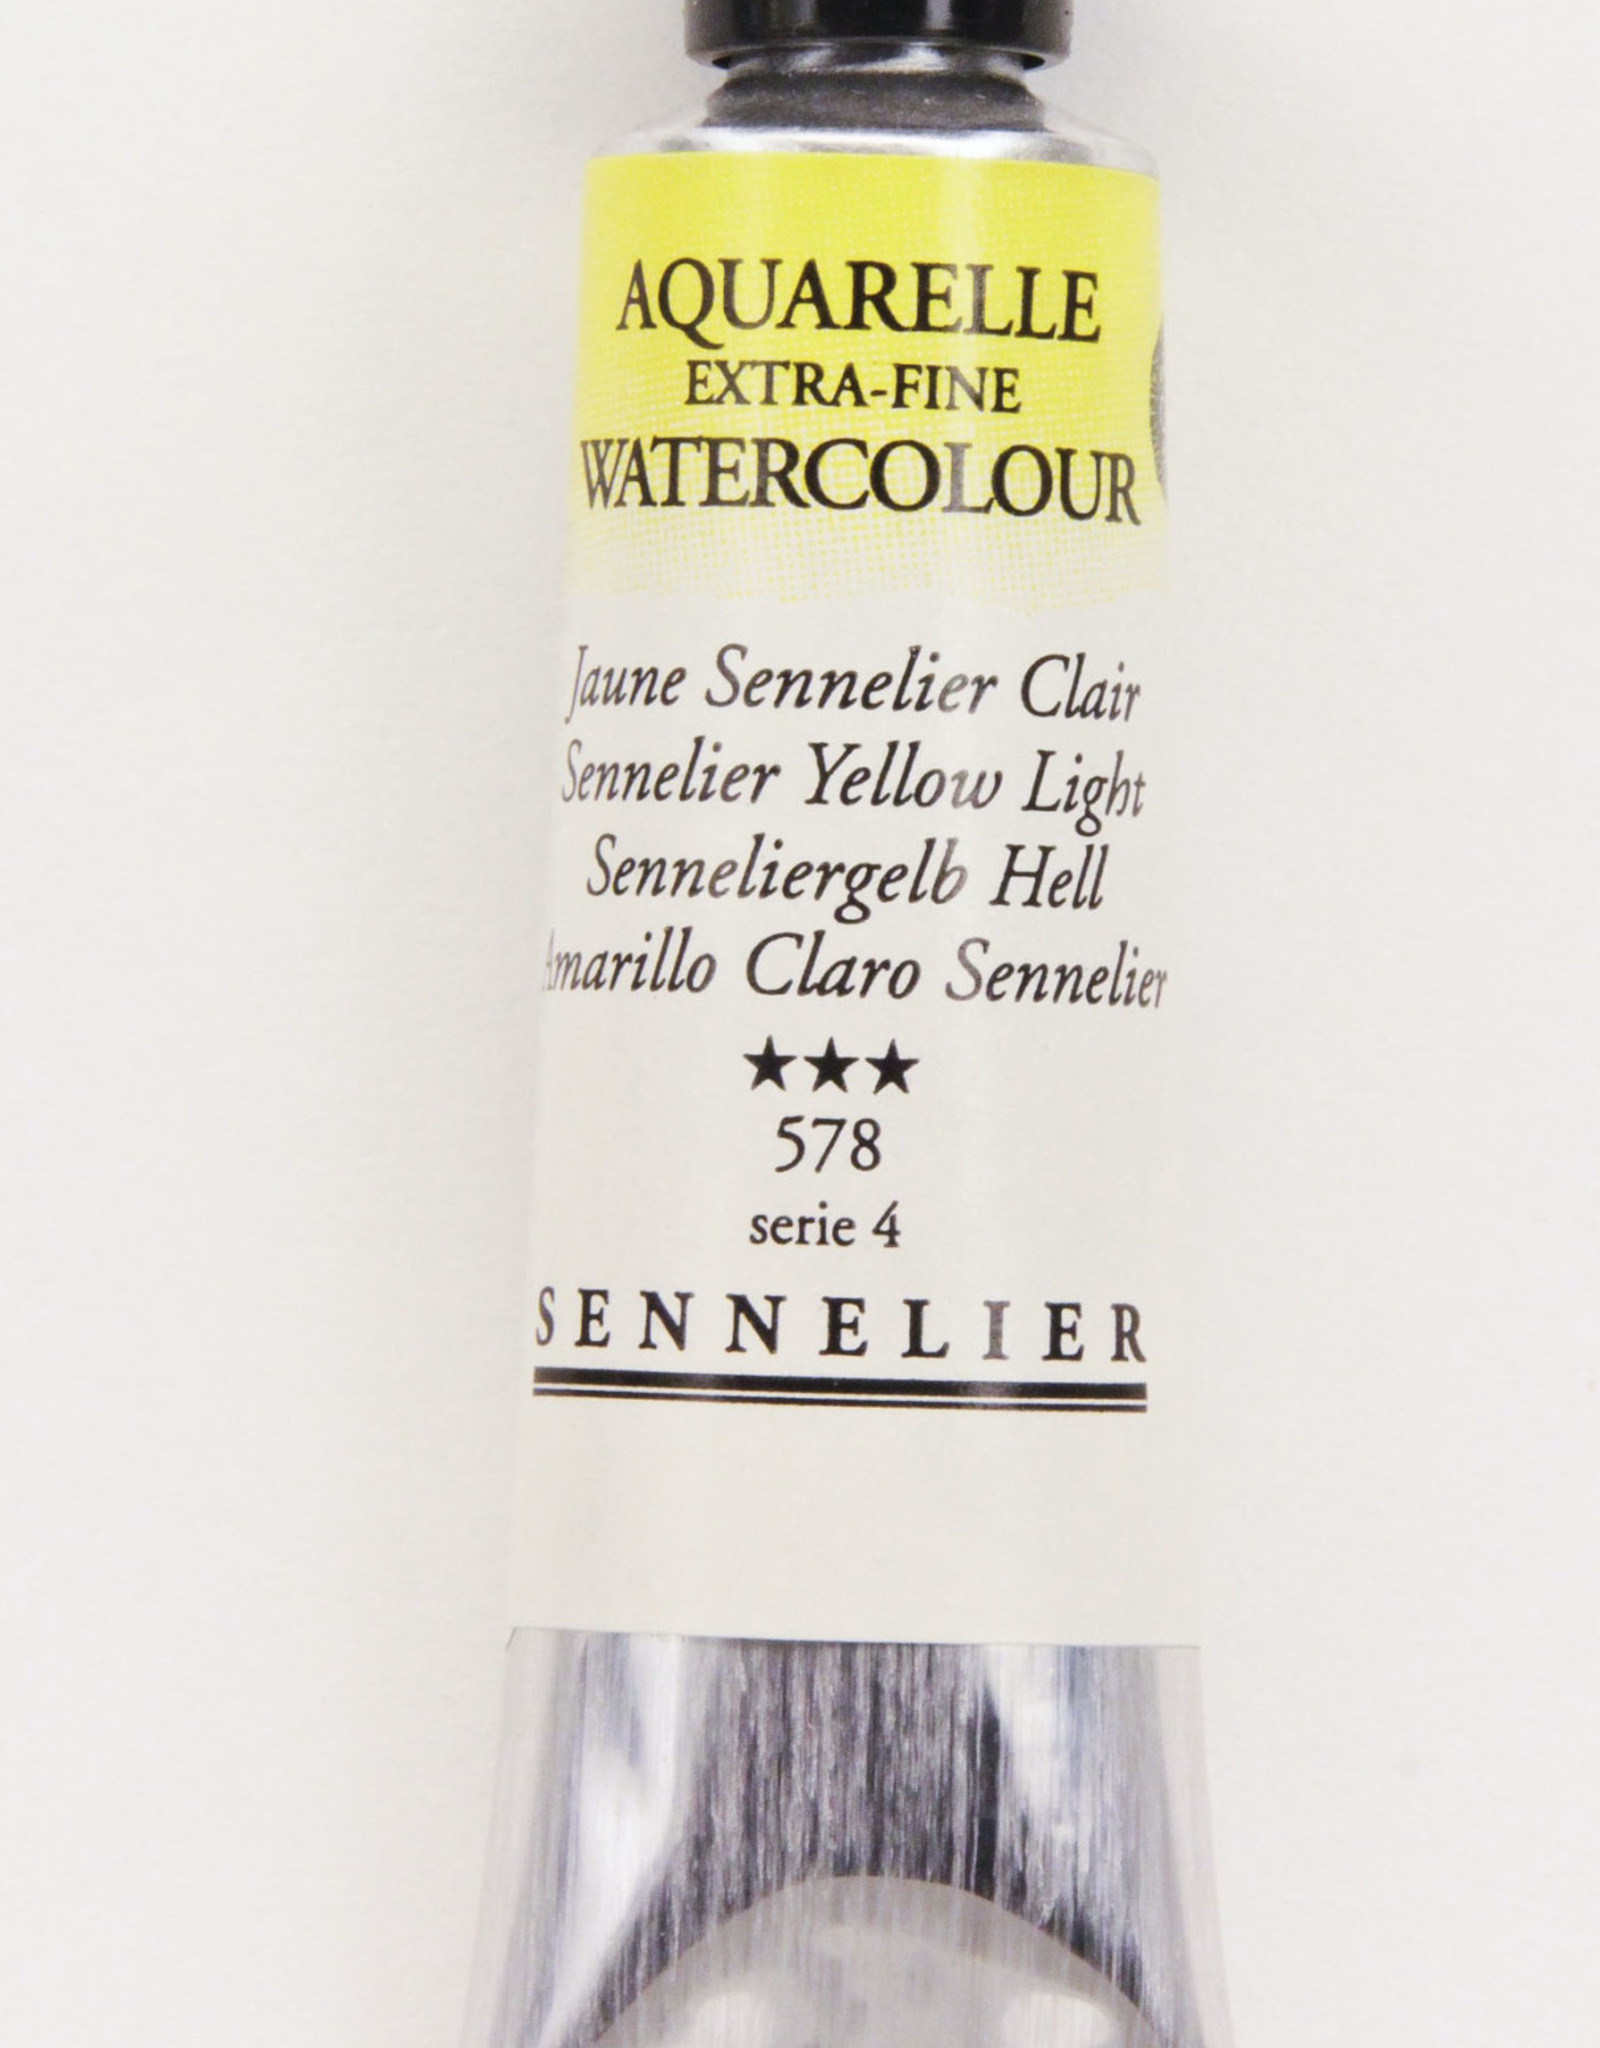 Sennelier, Aquarelle Watercolor Paint, Yellow Light, 578,10ml Tube, Series 1